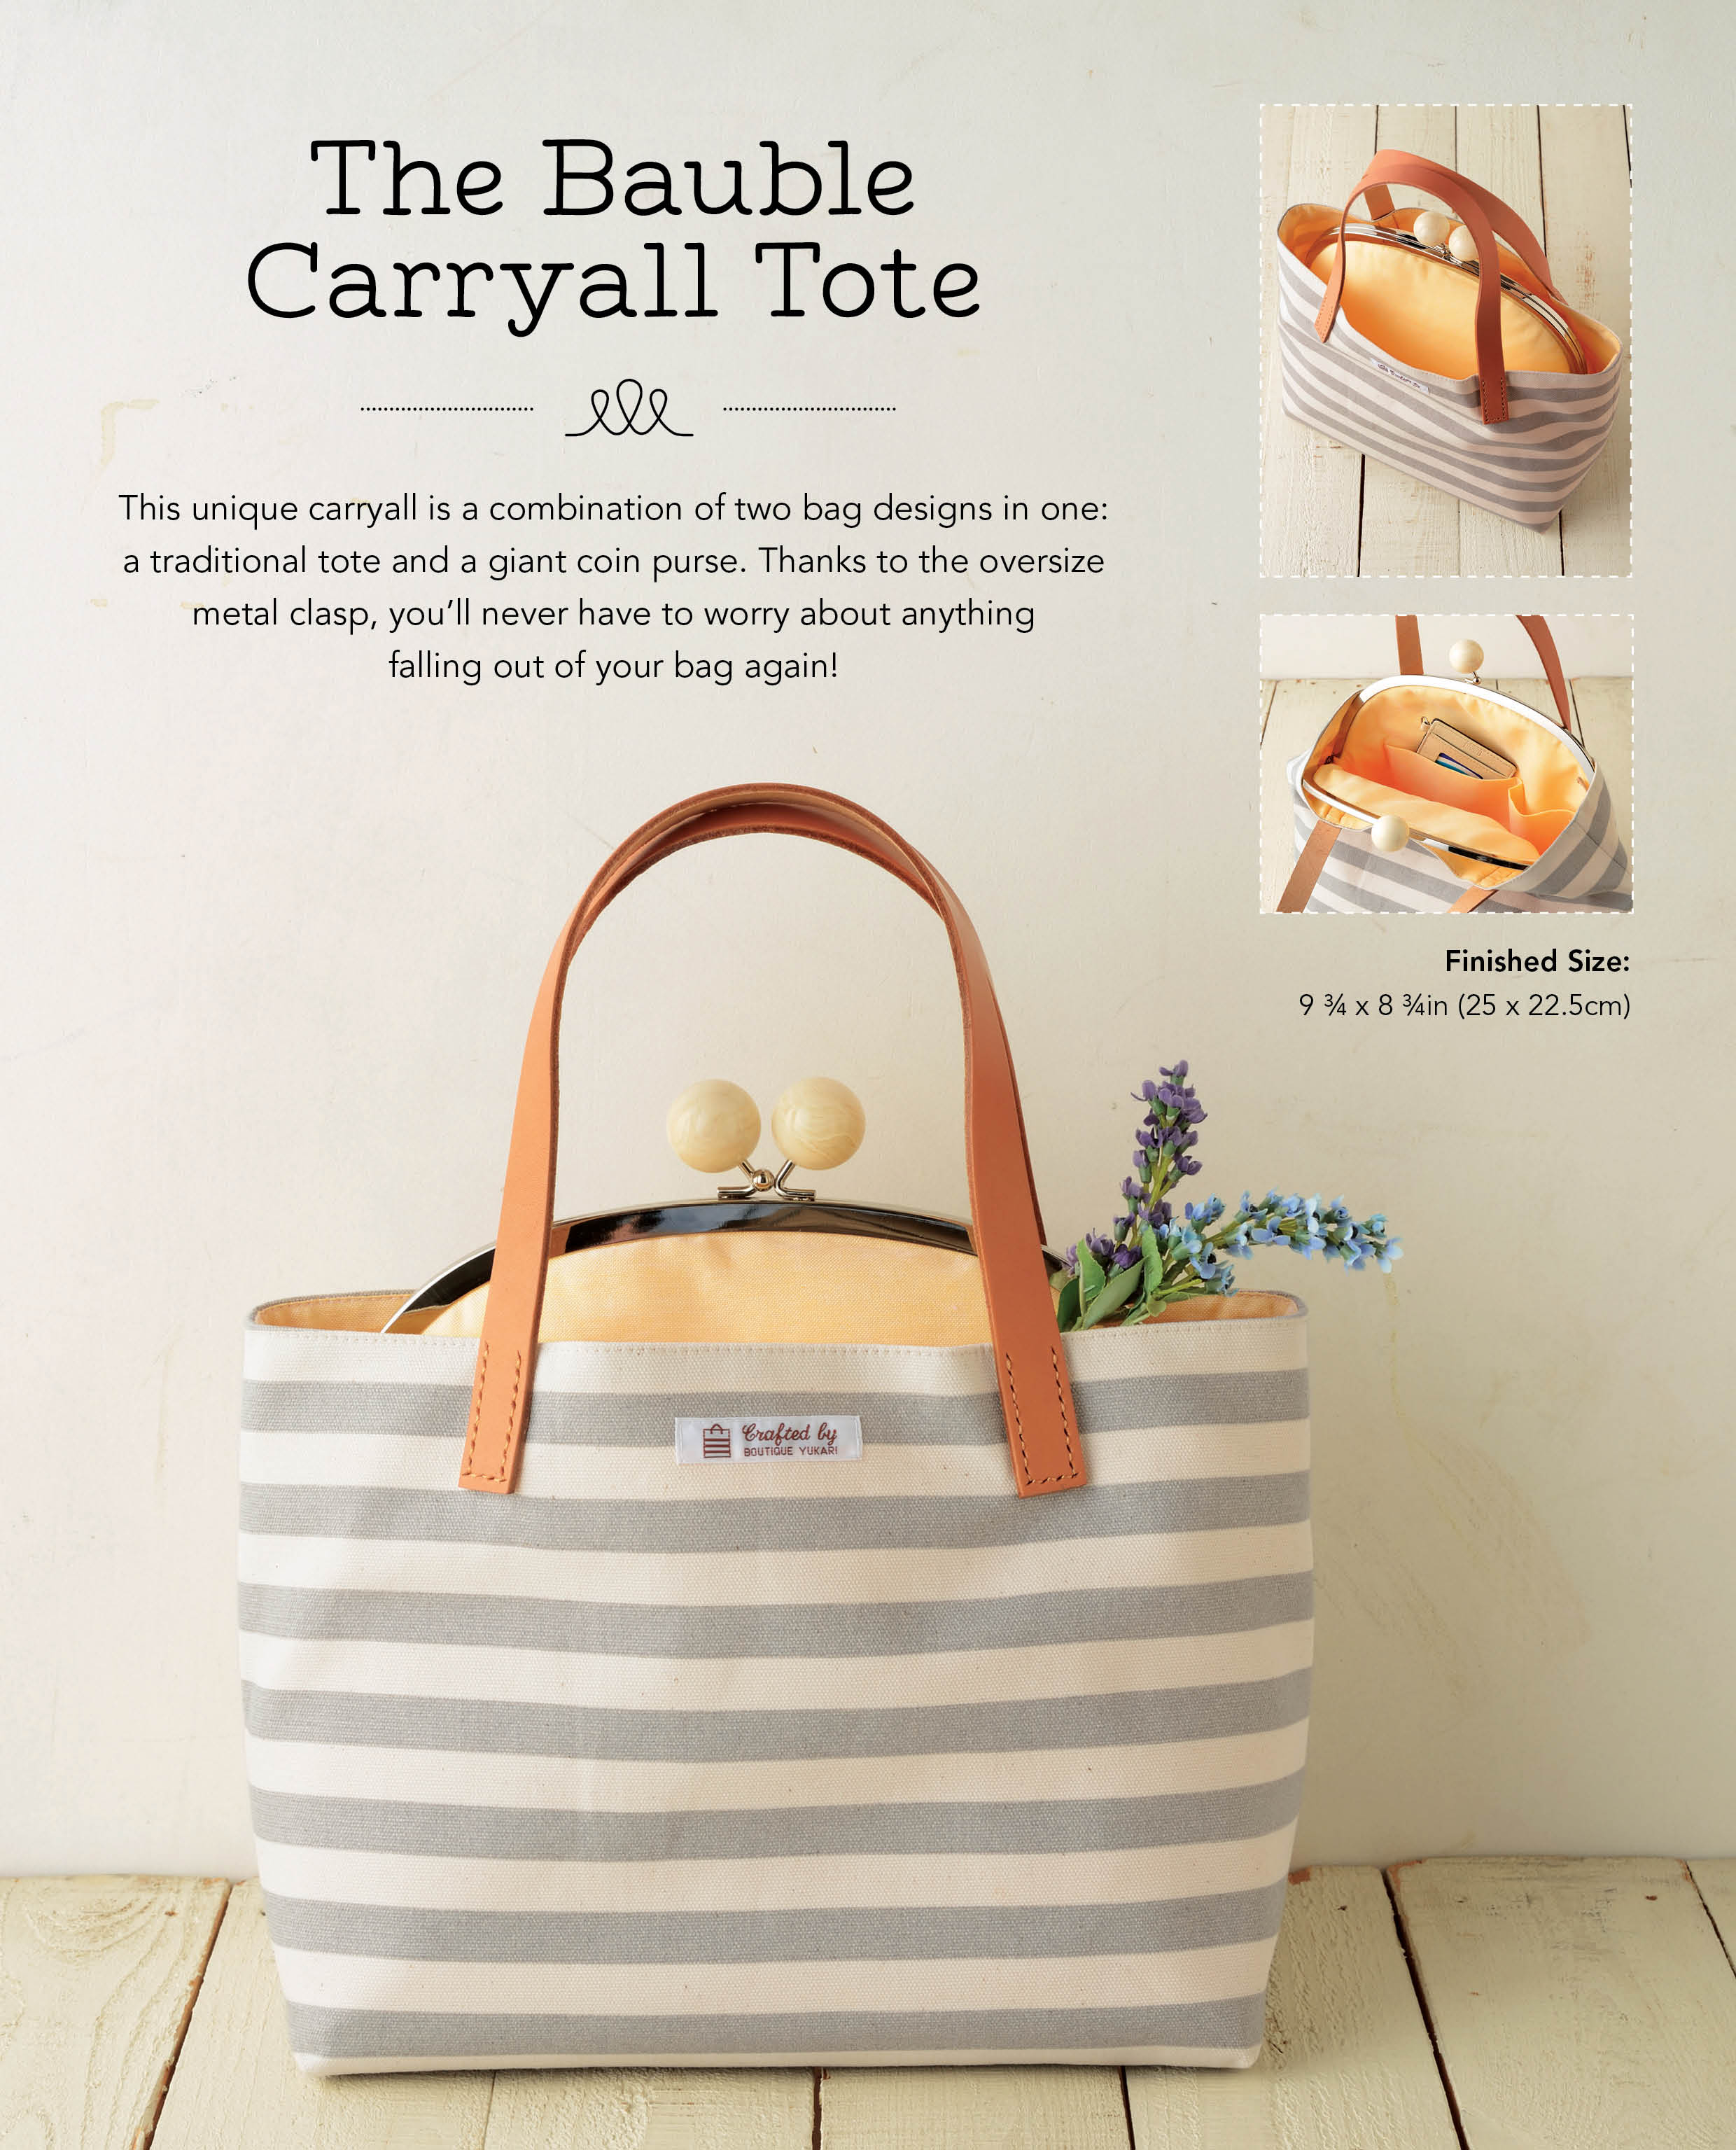 Bauble Carryall Tote Errate Page.jpg